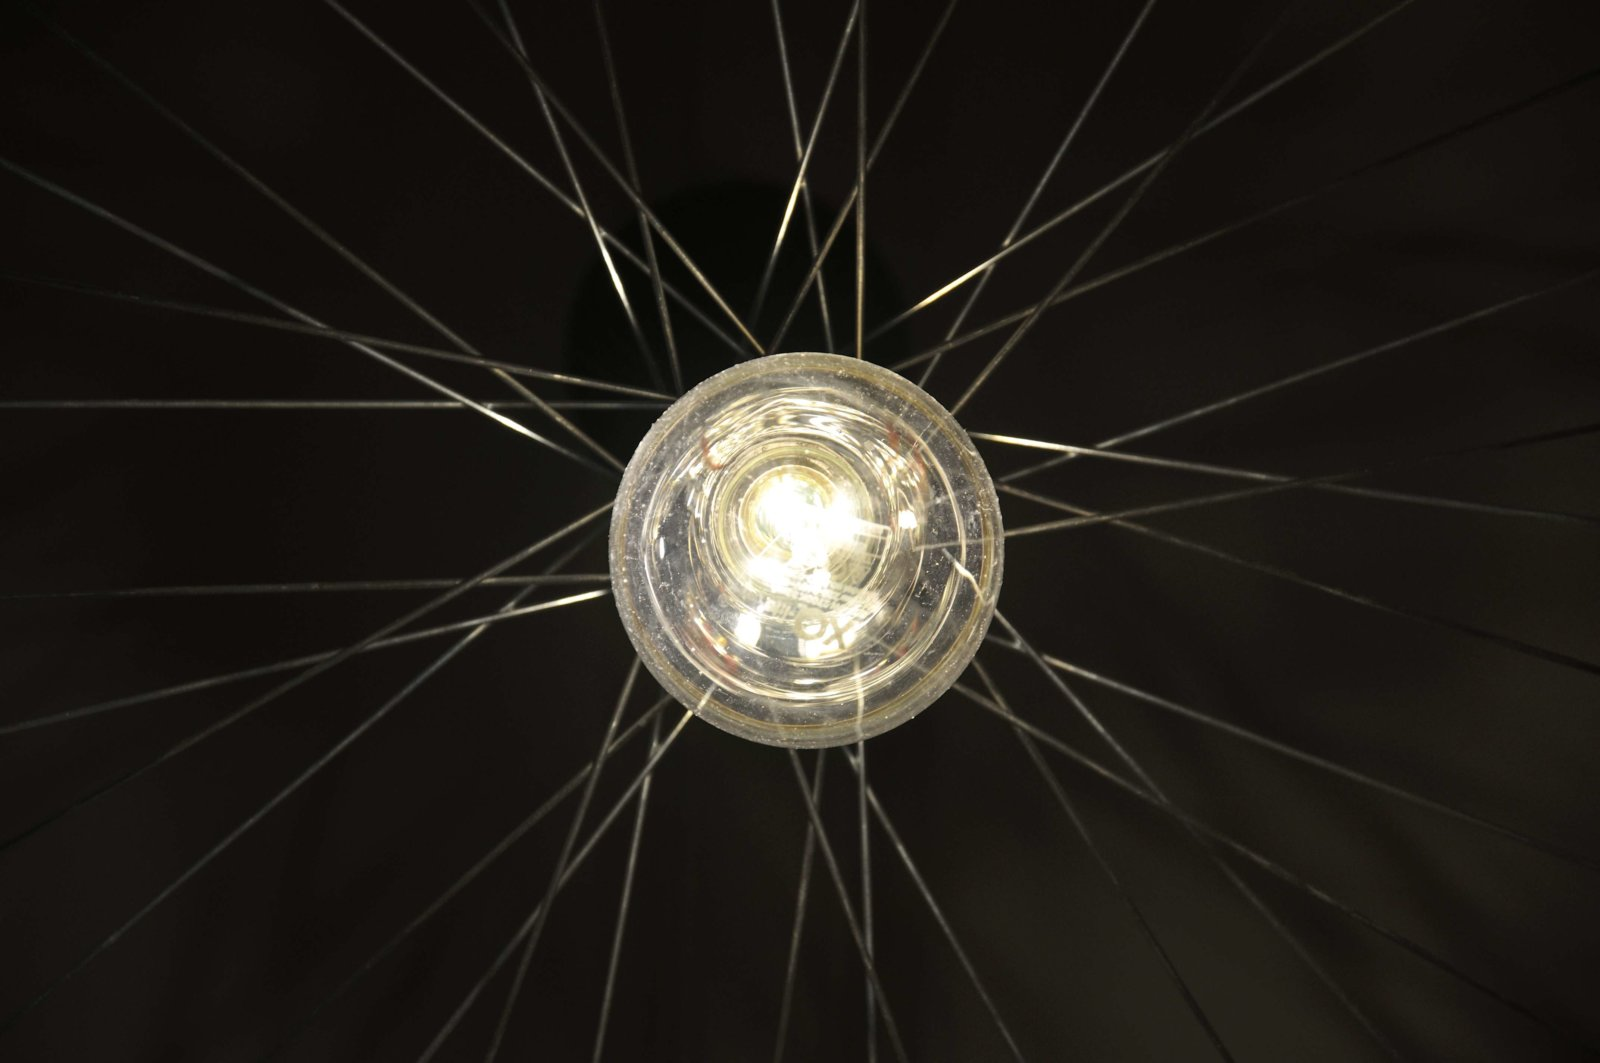 Detail Lichtwiel MTB Lamp Created By Decreatievelink